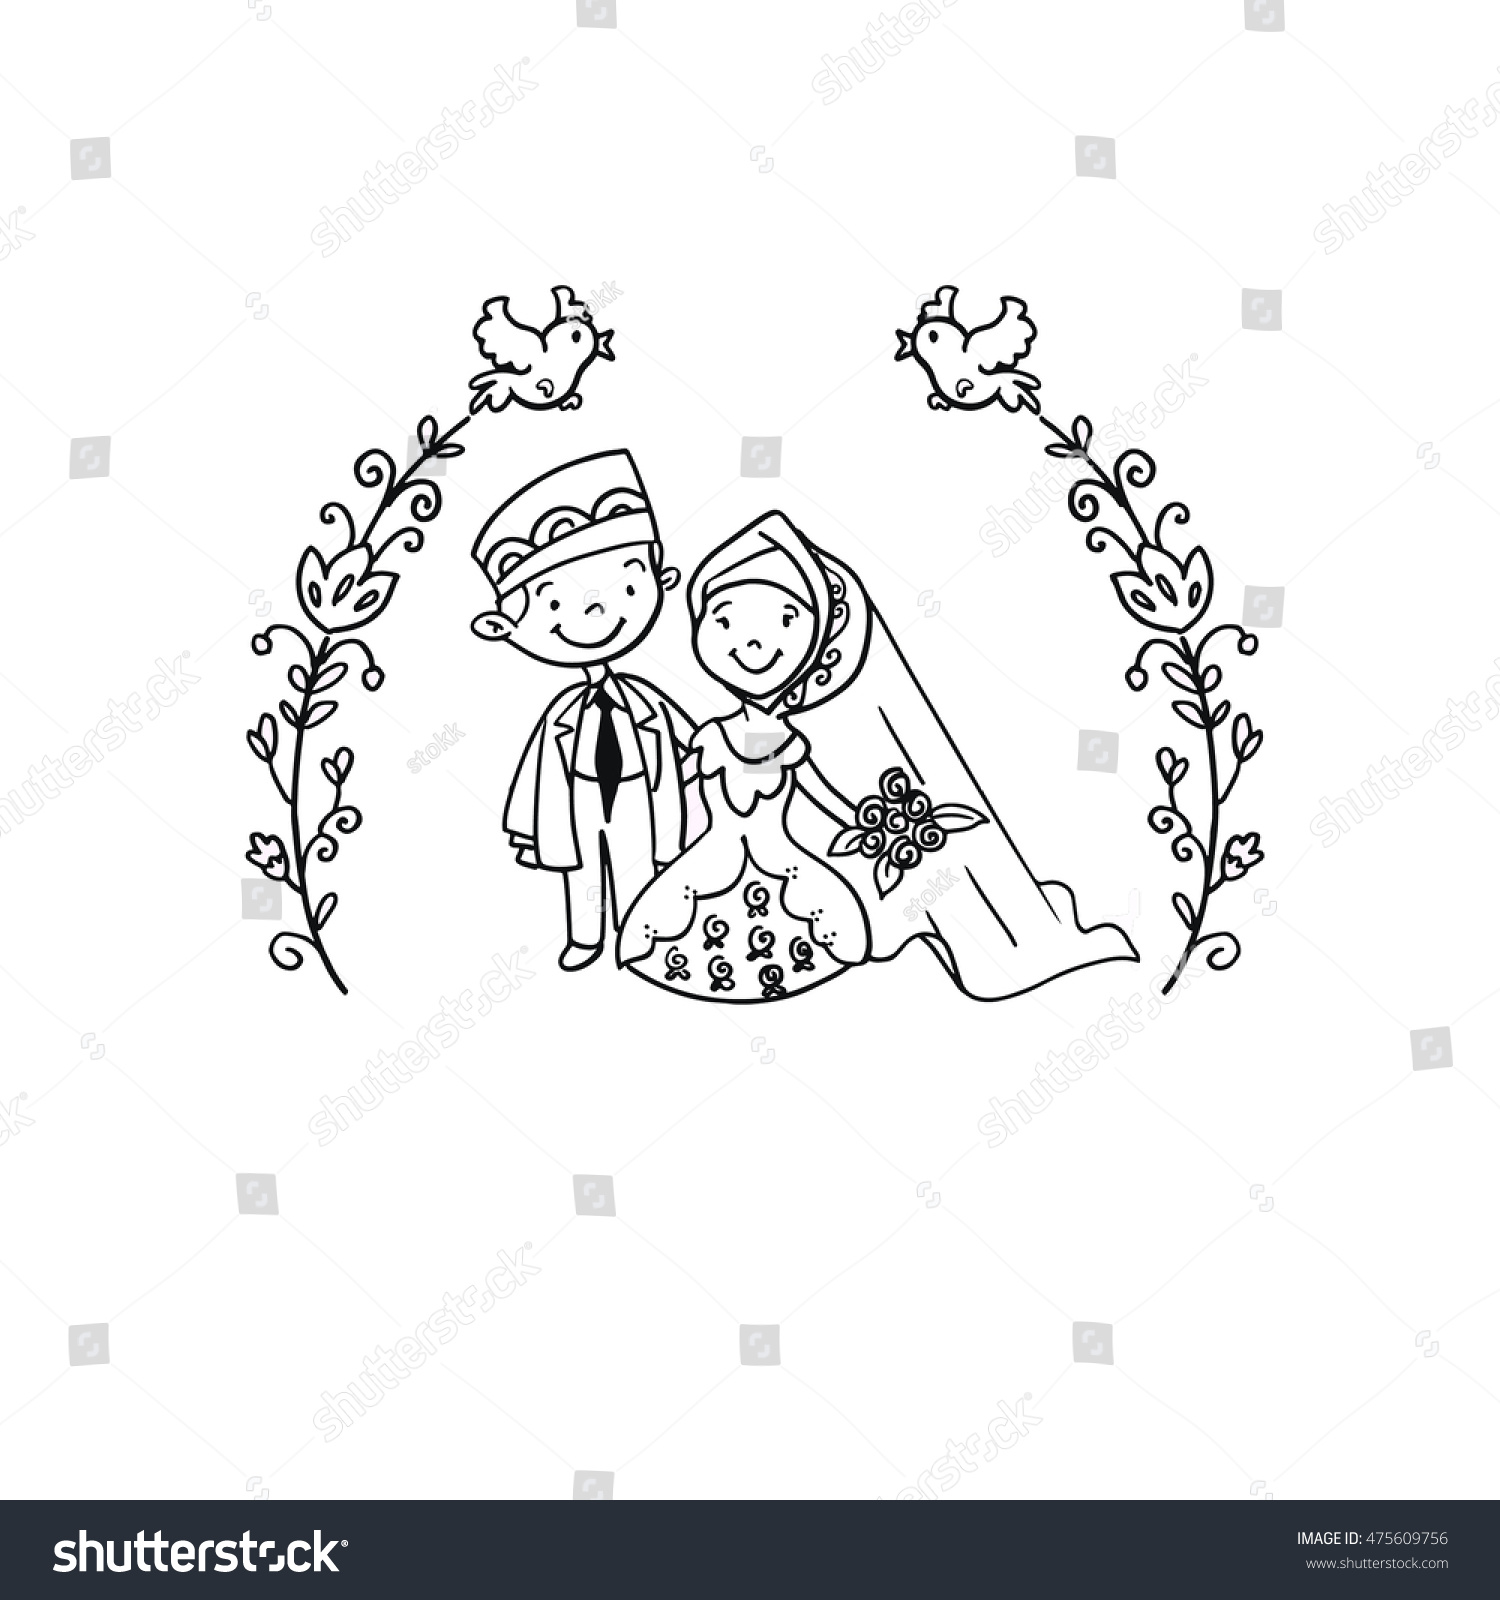 Islamic wedding couple doodle illustration